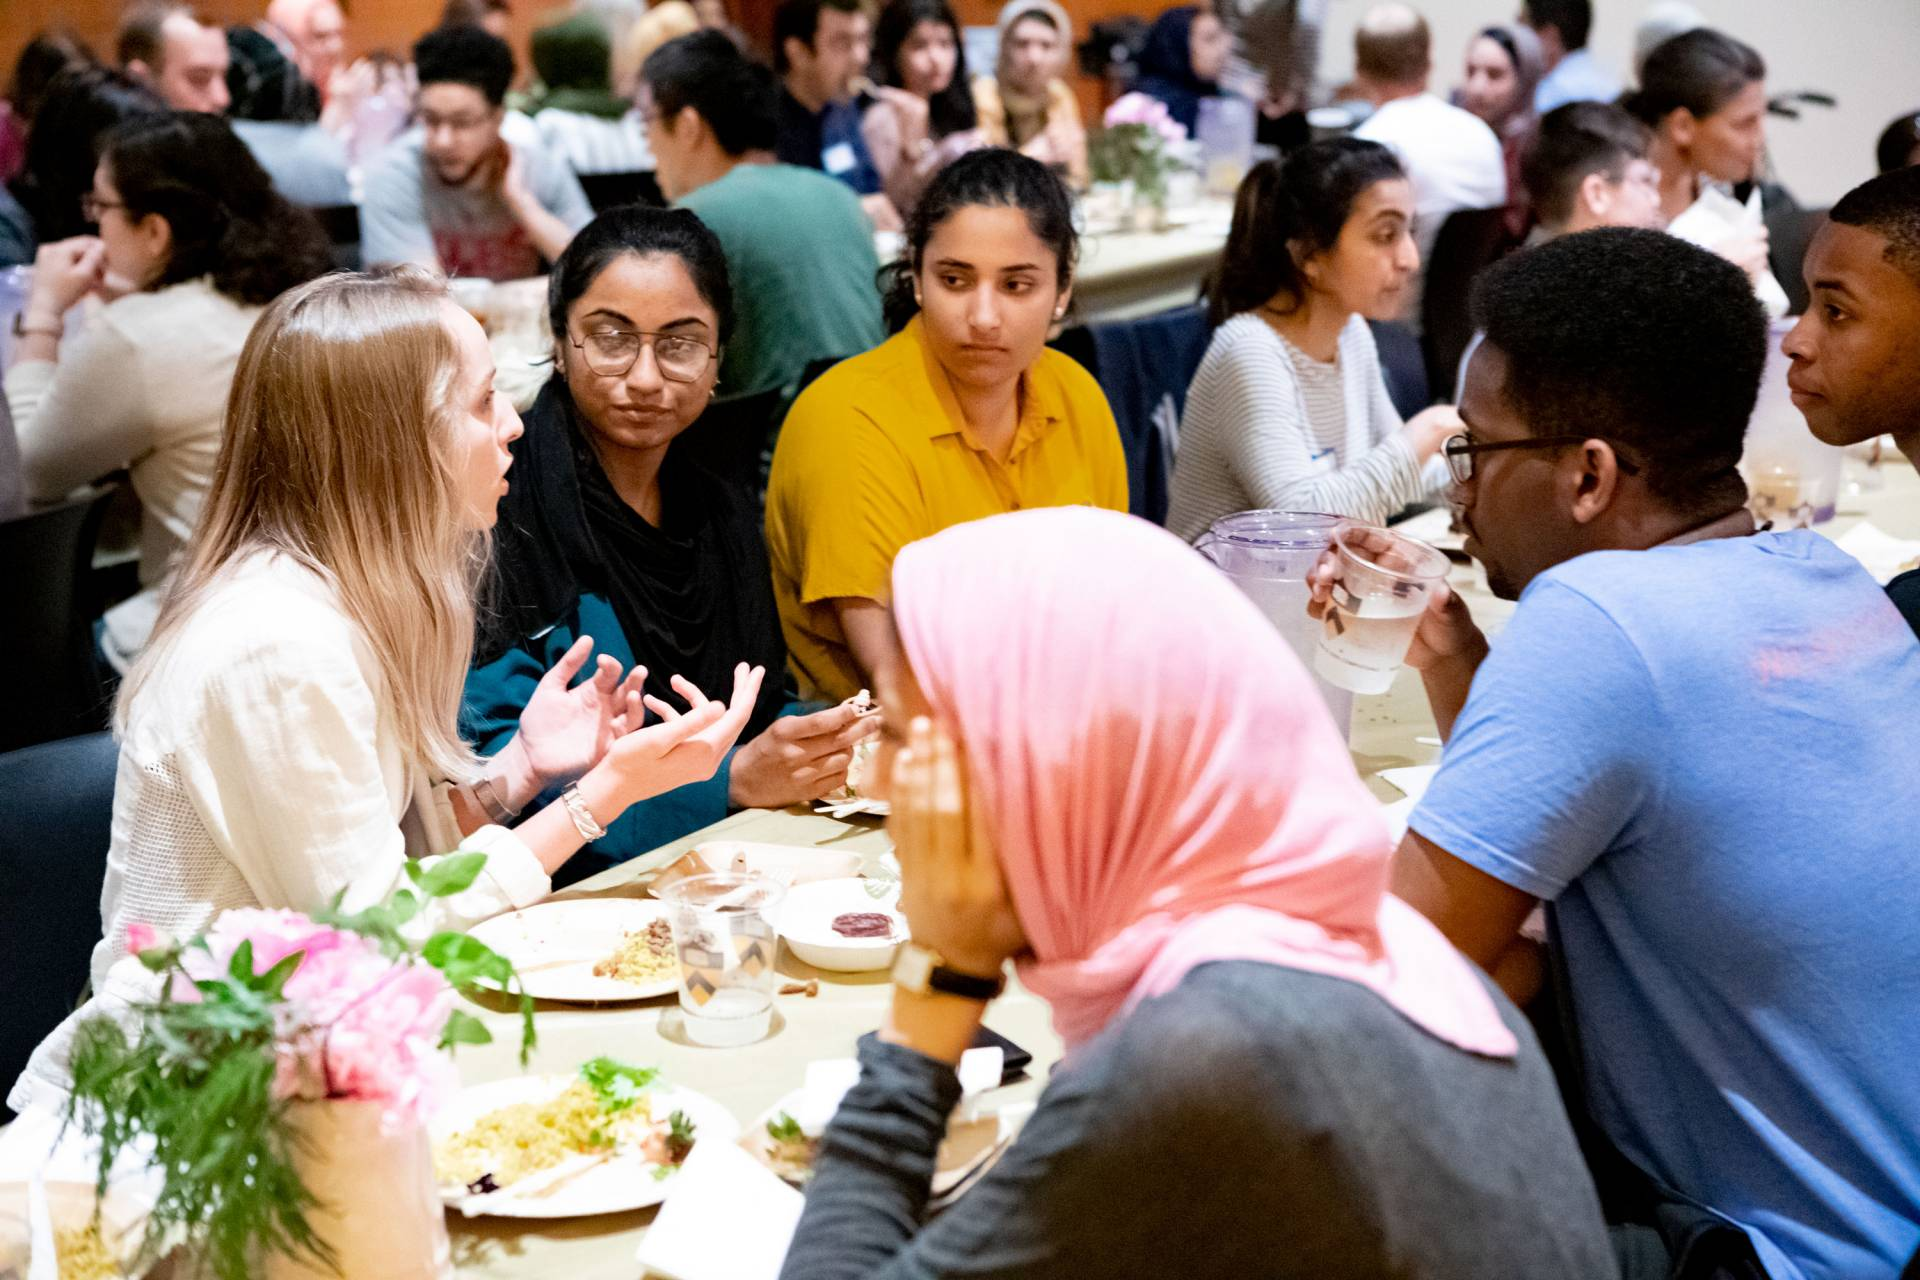 Students eating and speaking with one another at the interfaith dinner